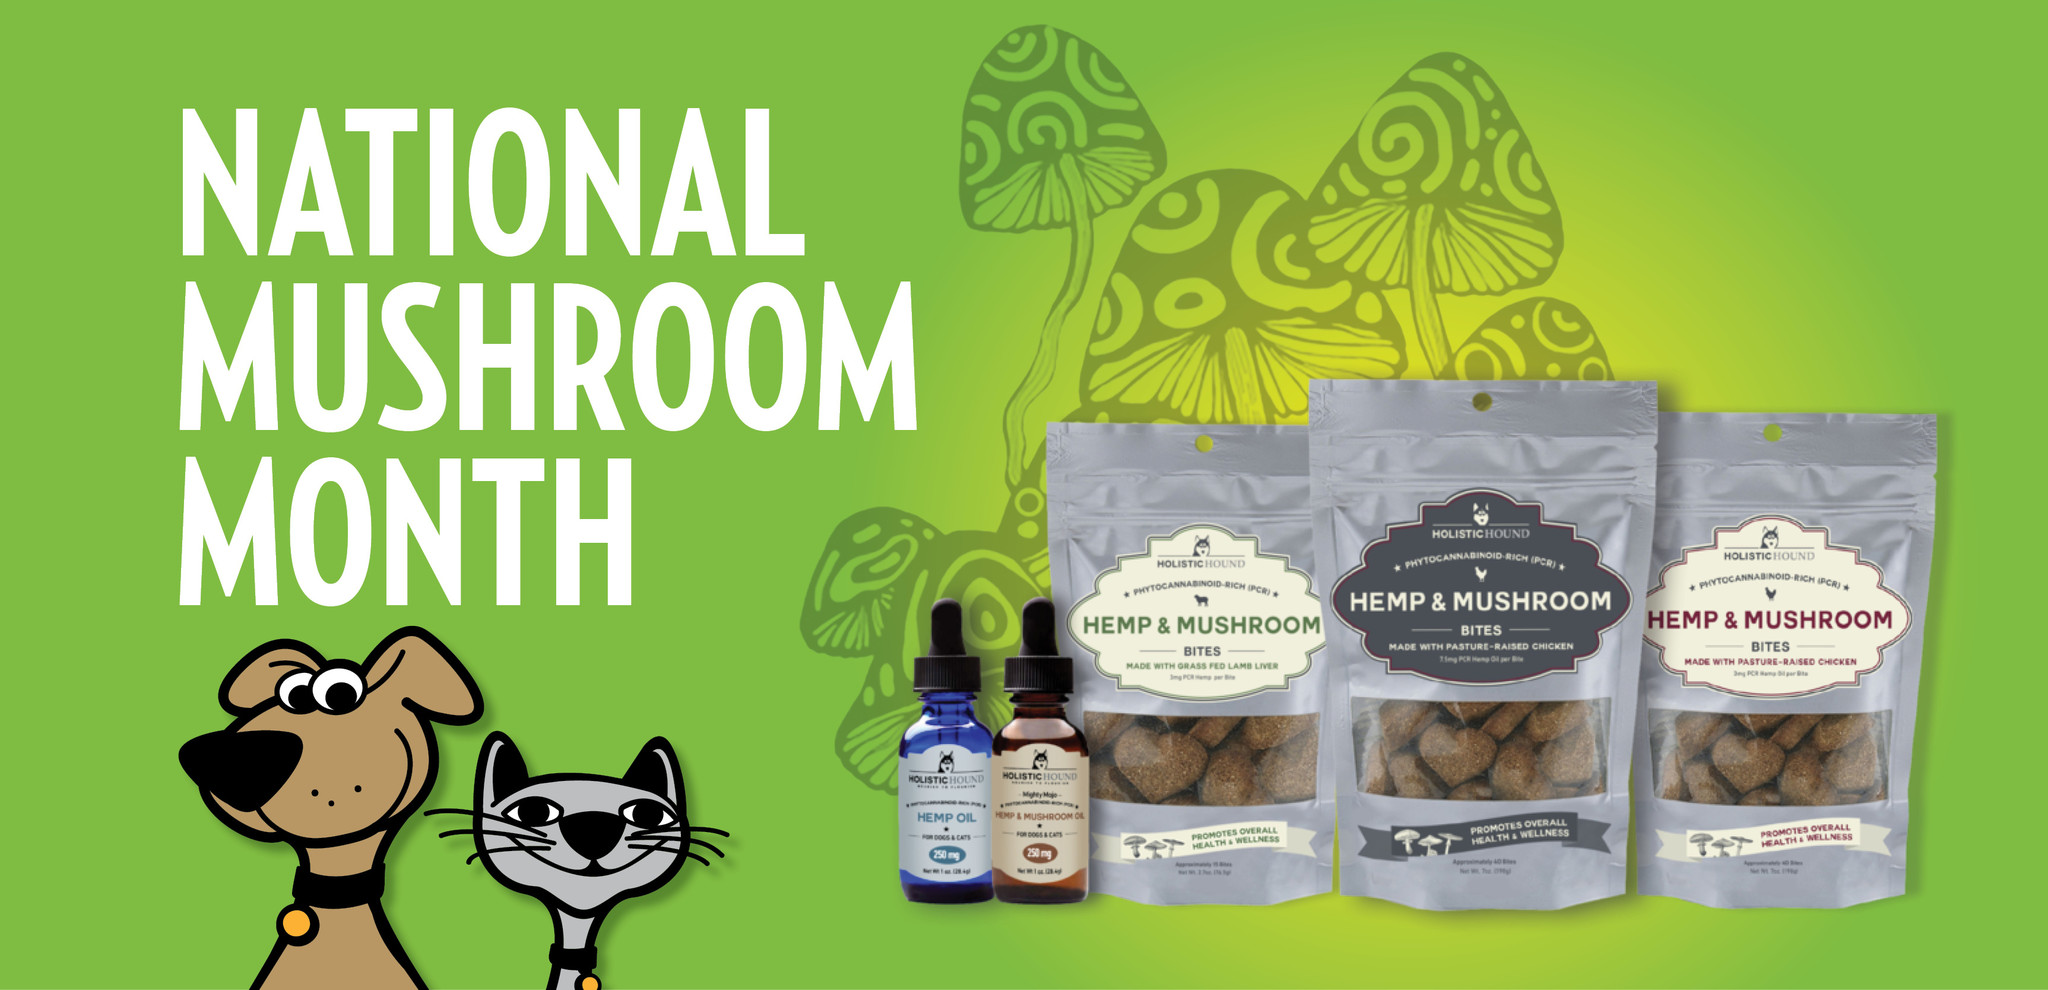 Benefits Of Mushrooms For Cats & Dogs